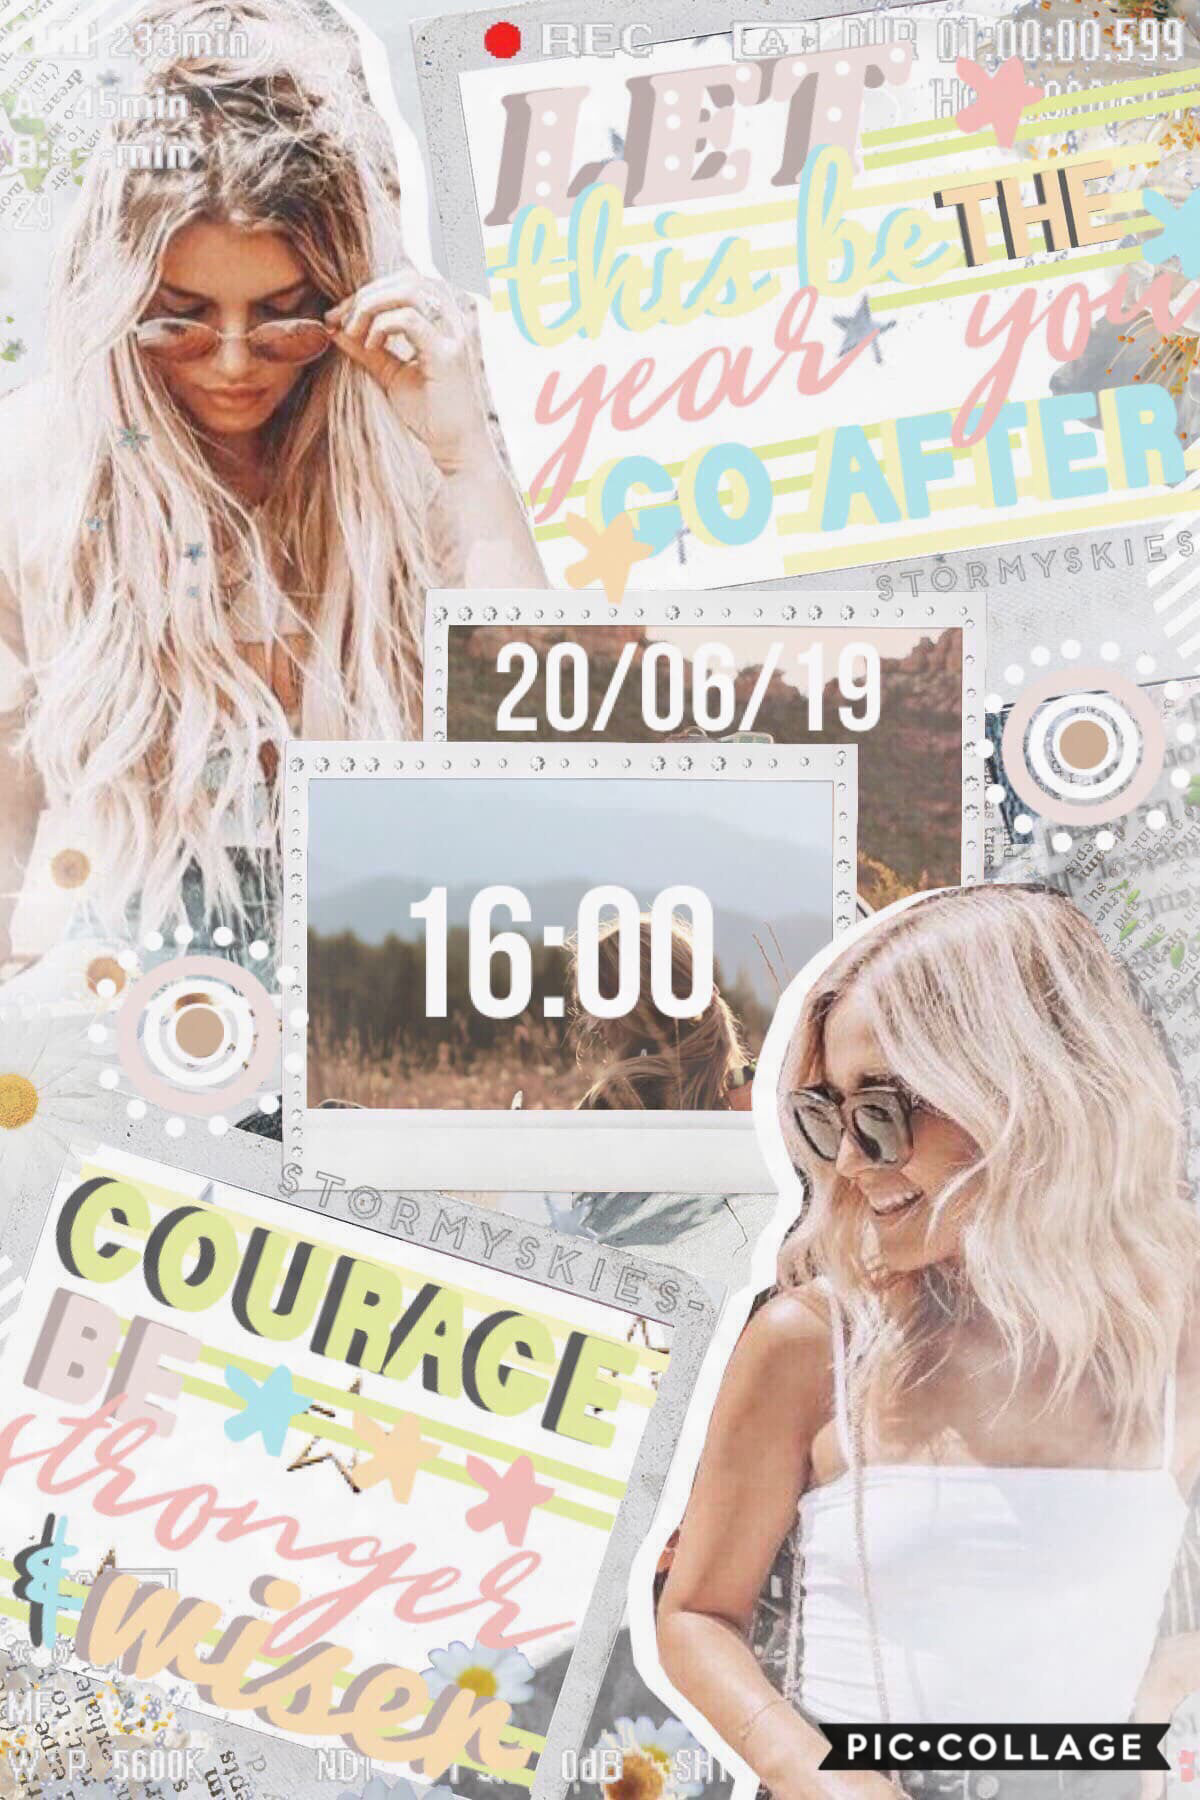 ✰🅣 🅐 🅟✰ I swear to god I never intended this to look exactly like @meandmeonlys!! I tried so much but it still looks so similar! I'm so sorry guys I know you are probably getting bored of my bad collages :/ this weekend imma whip up and experiment new sty